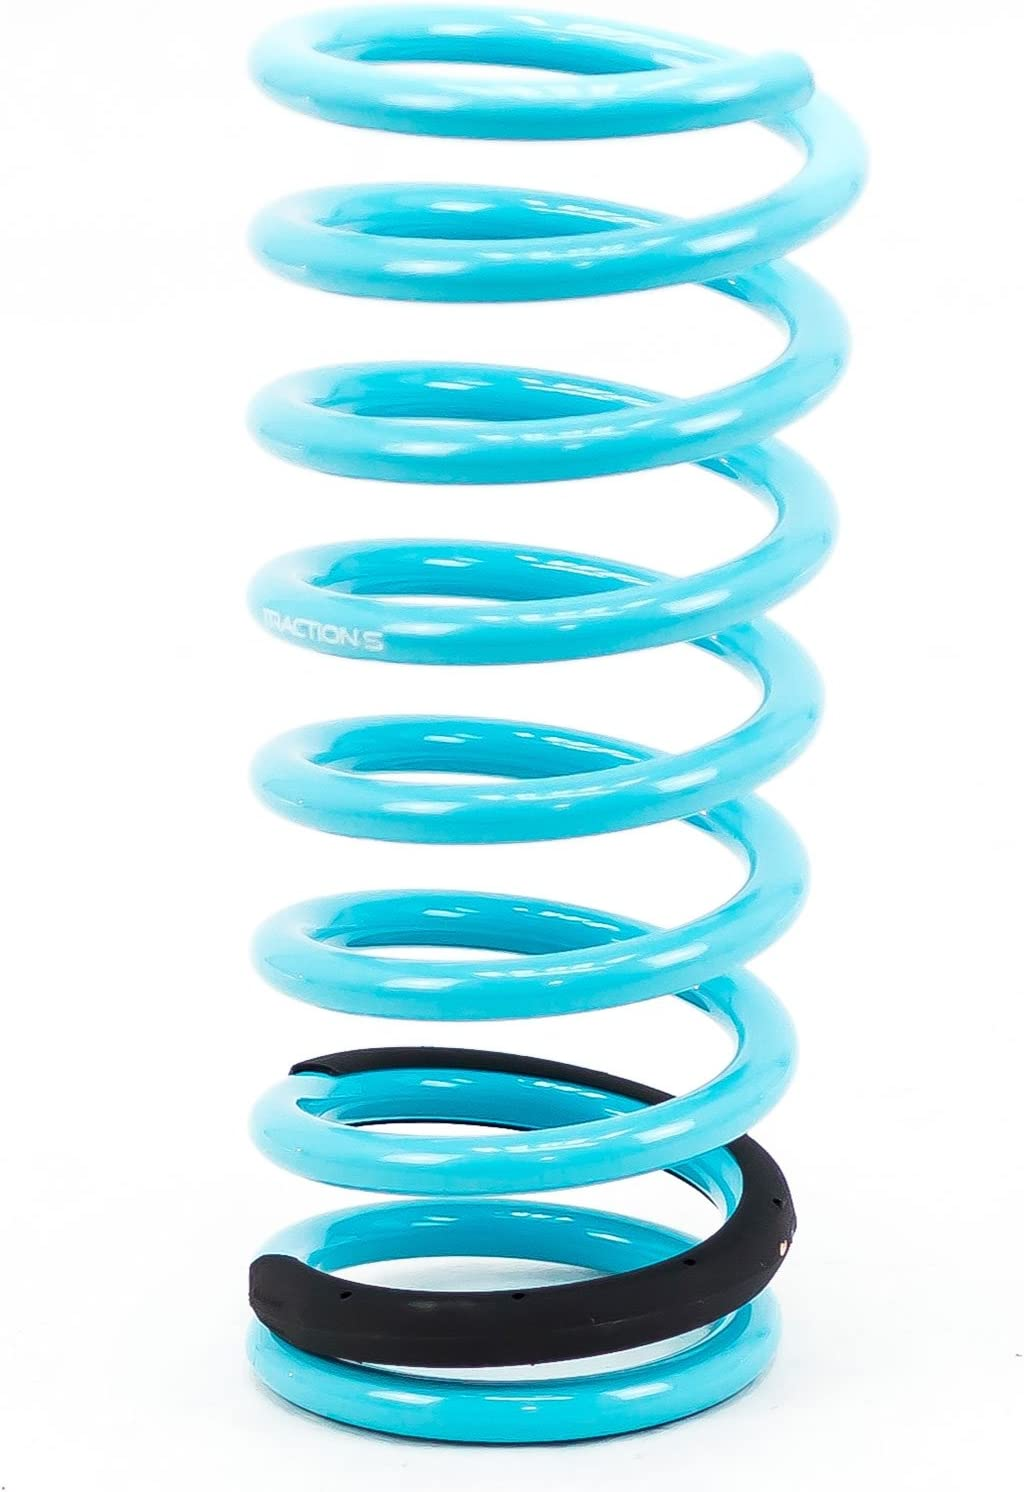 Godspeed LS-TS-SN-0004-B Traction-S Performance Lowering Springs Set of 4 Improved Handling Reduce Body Roll